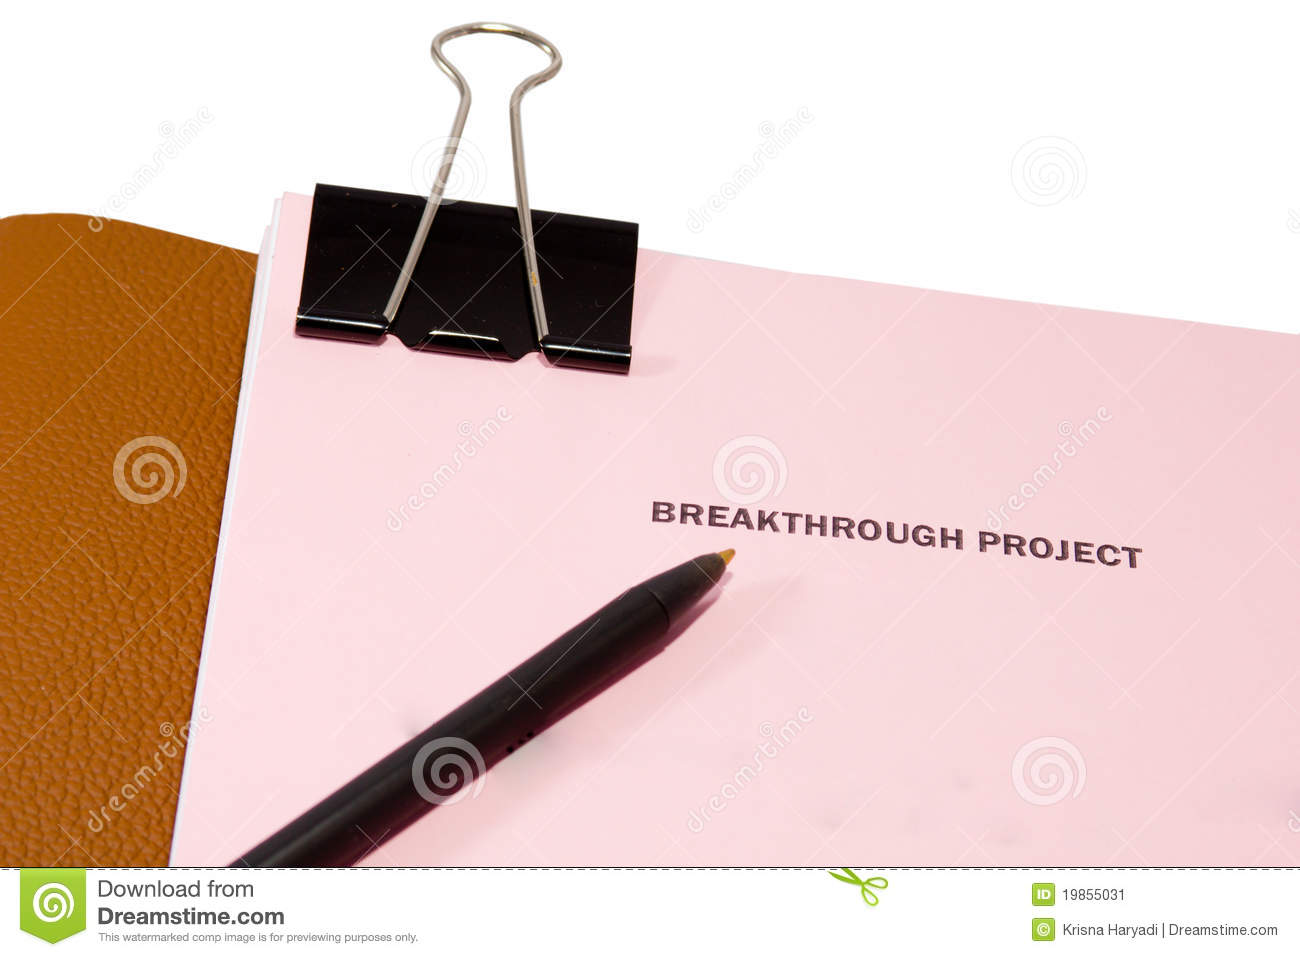 Breakthrough Project Proposal With A Pen  Isolated On White With